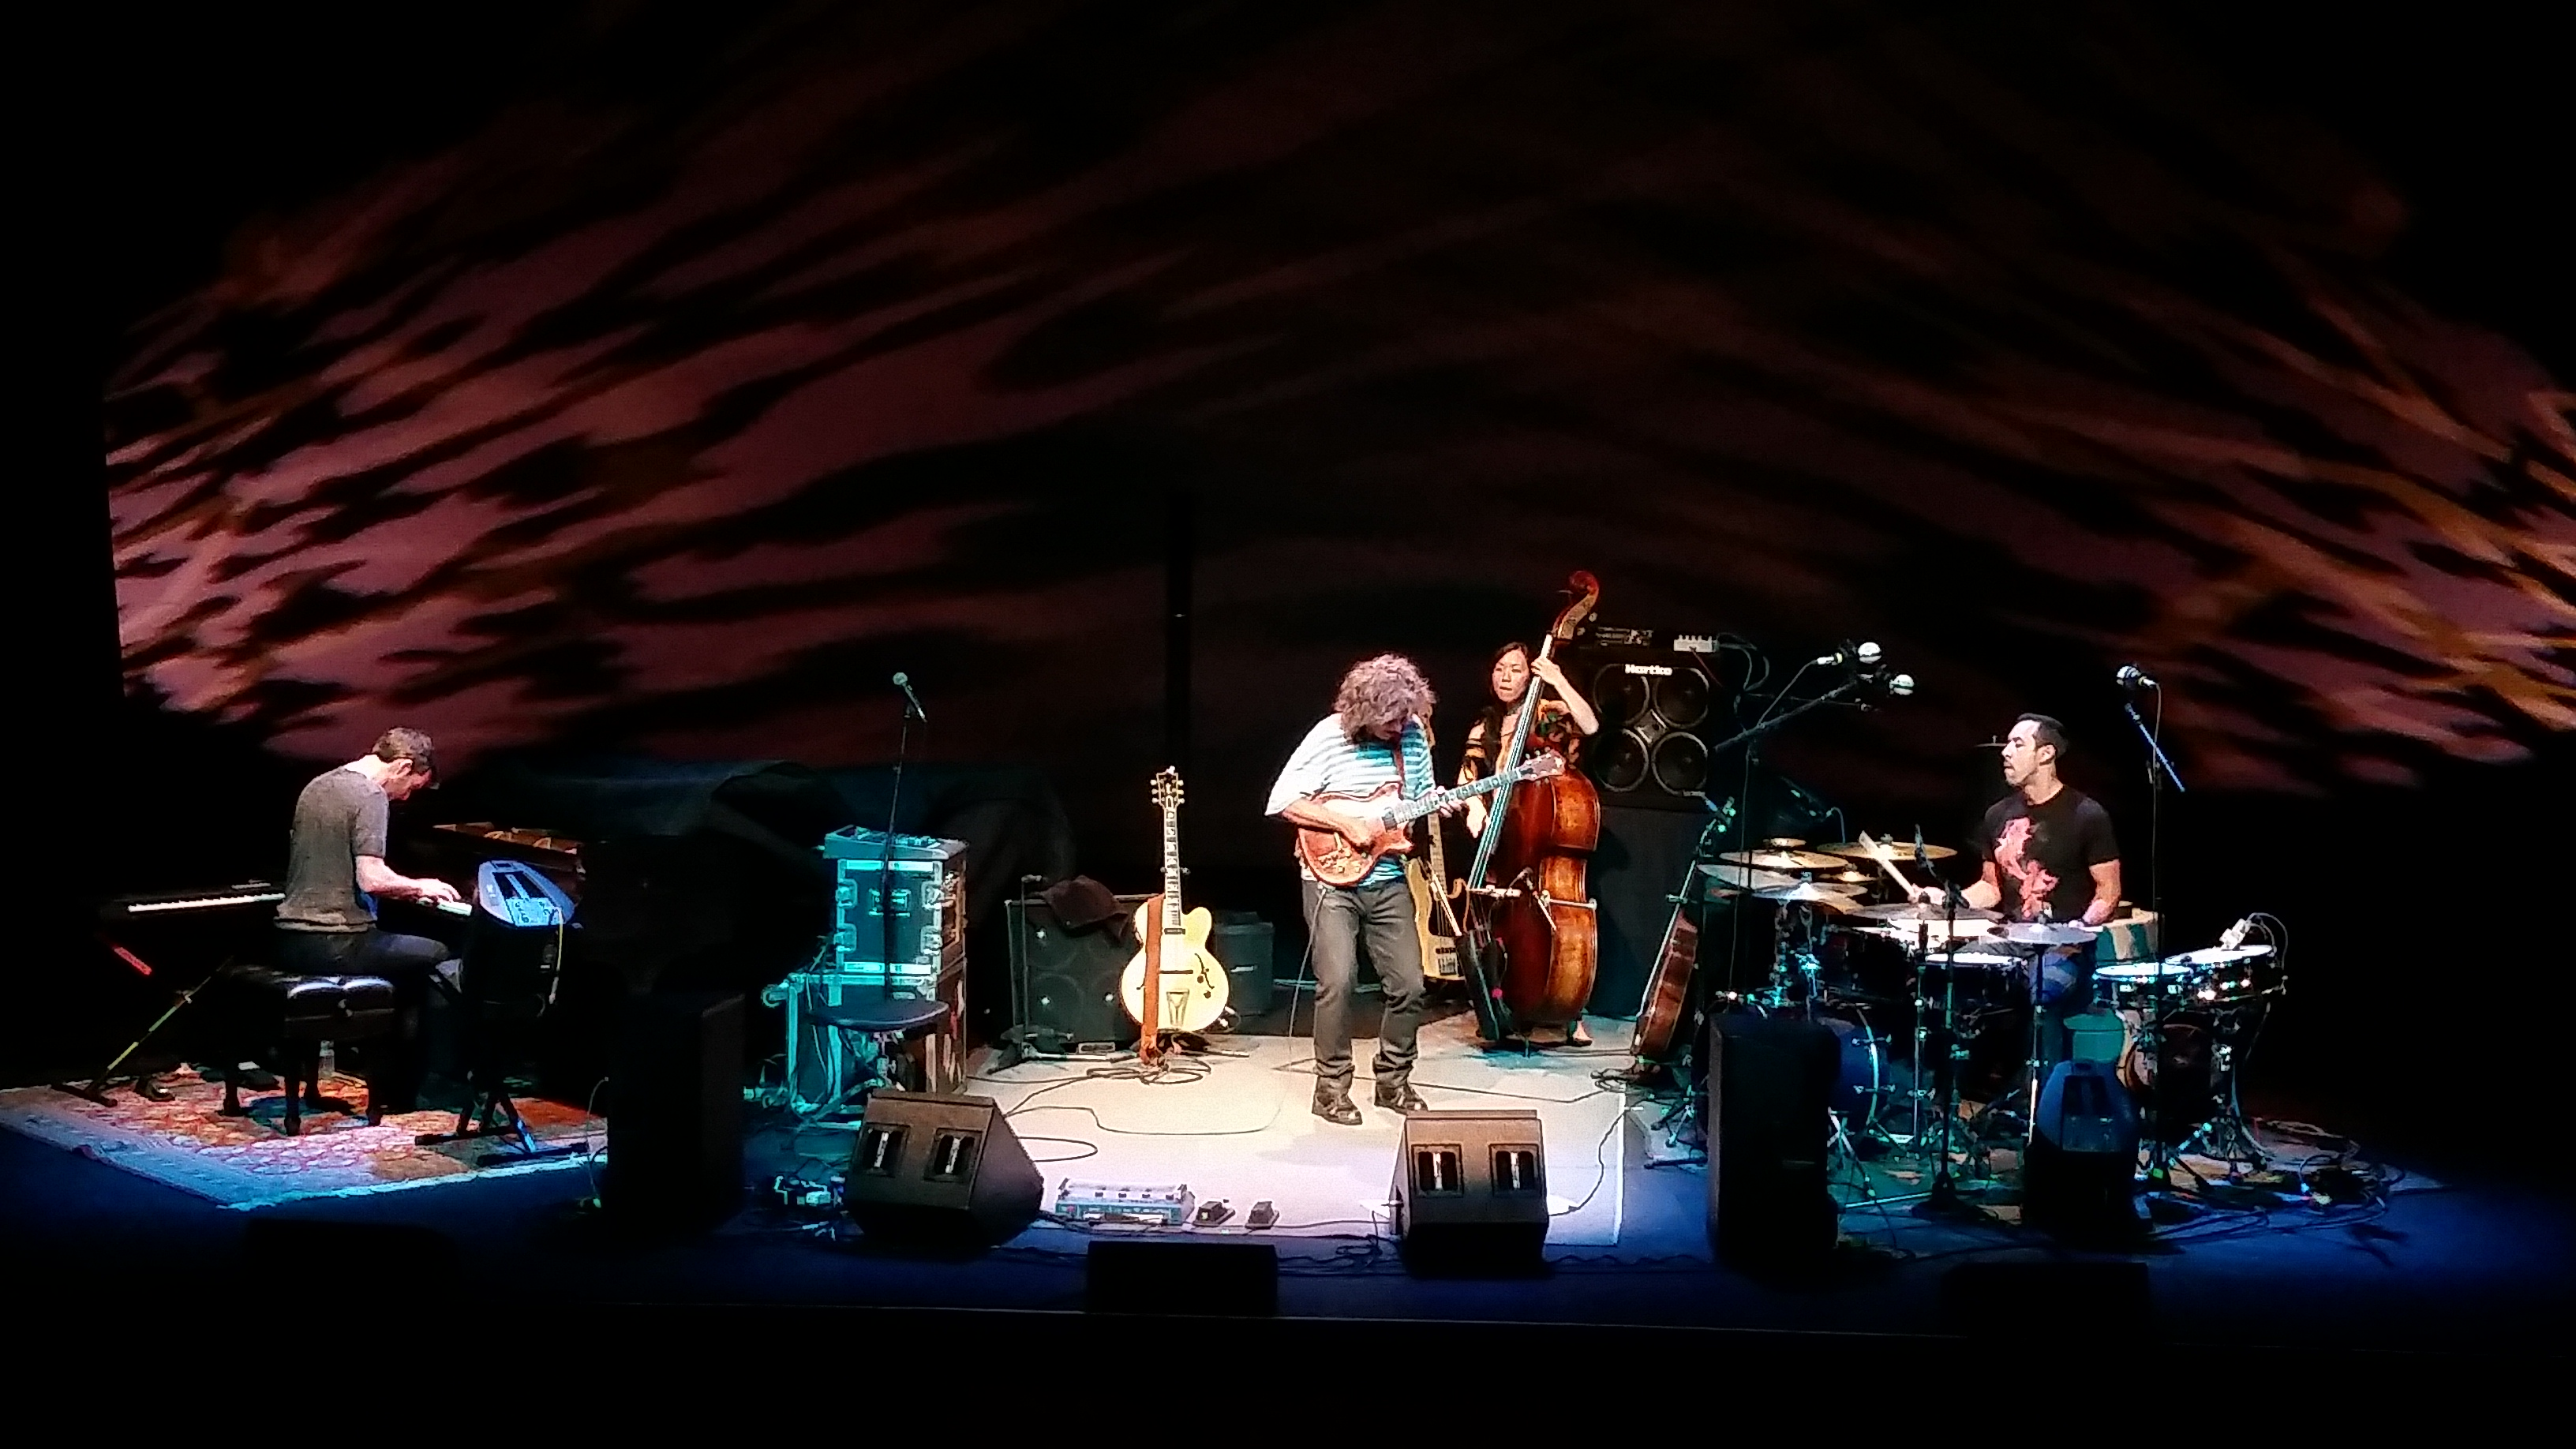 PatMetheny2016-09-16VirginiaPiperTheaterScottsdaleAZ (17).jpg